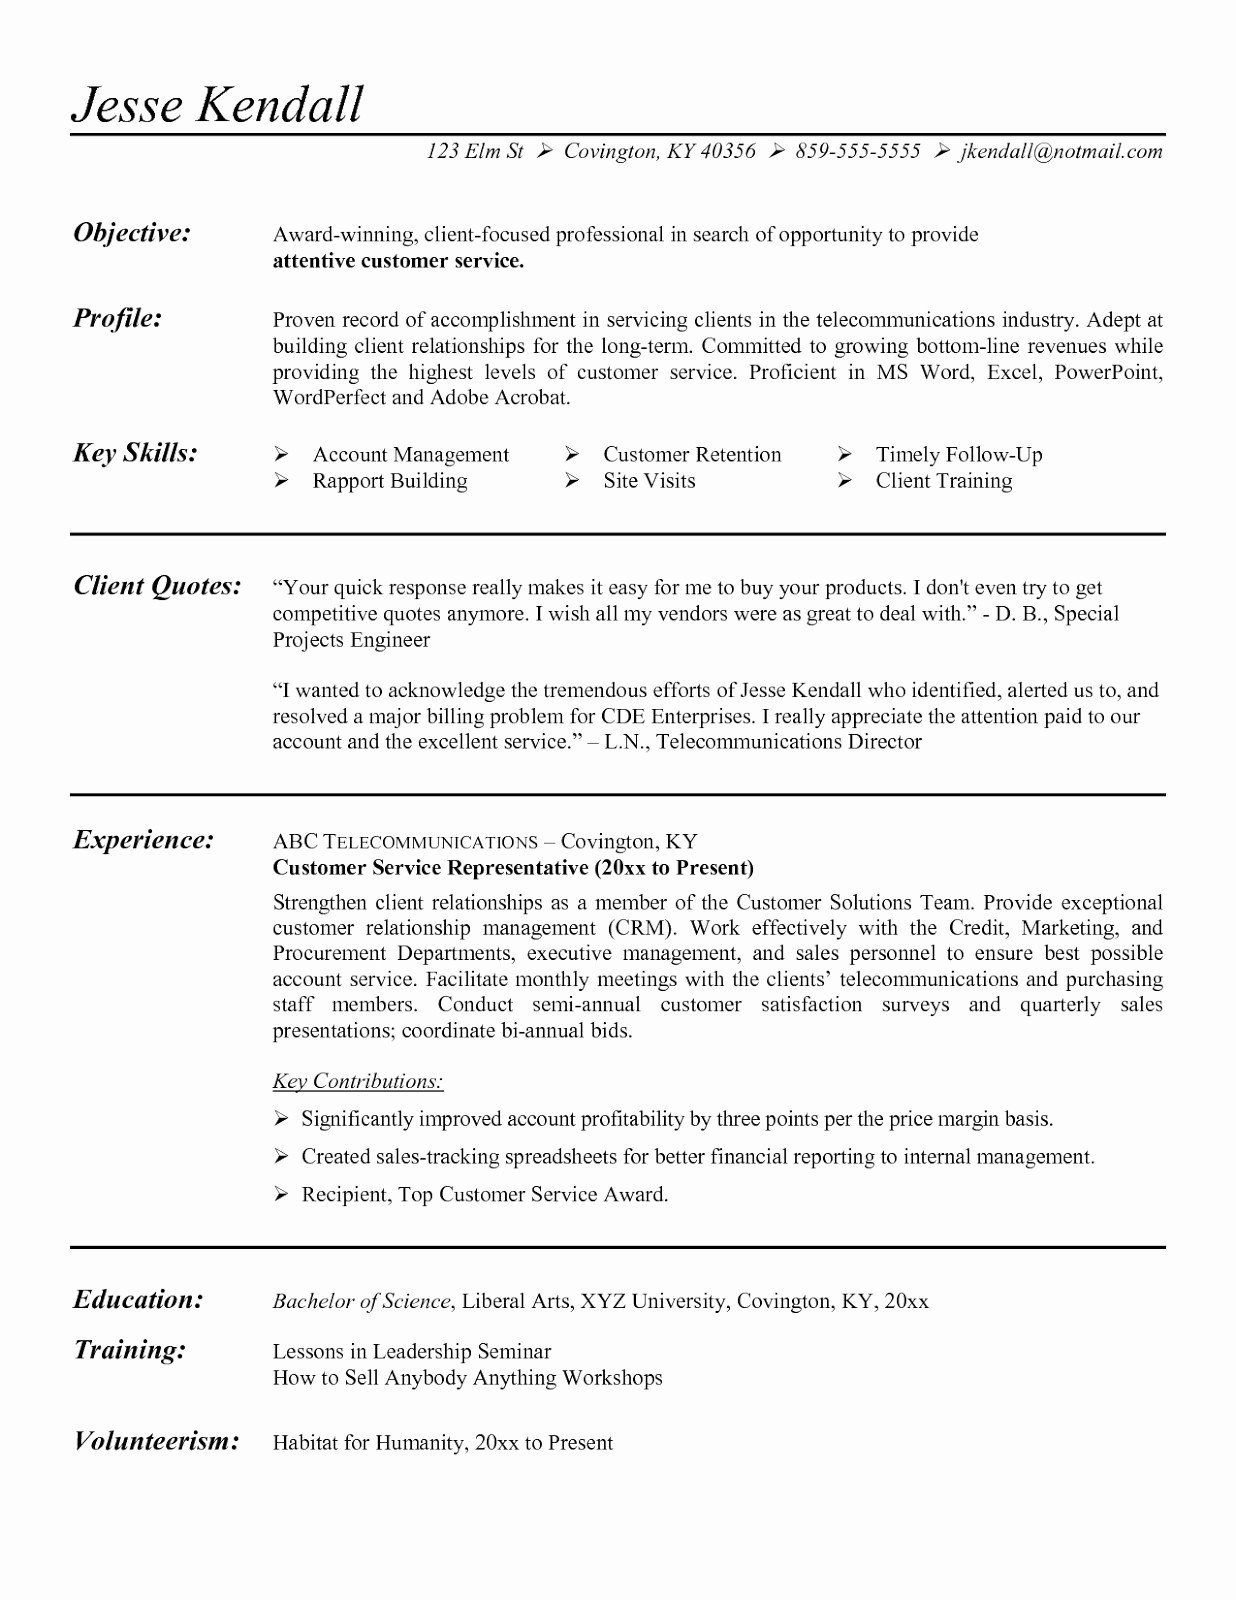 Pharmacy Technician Job Description For Resume Lovely Best Pharmacy Technician Resu Resume Objective Examples Good Objective For Resume Customer Service Resume